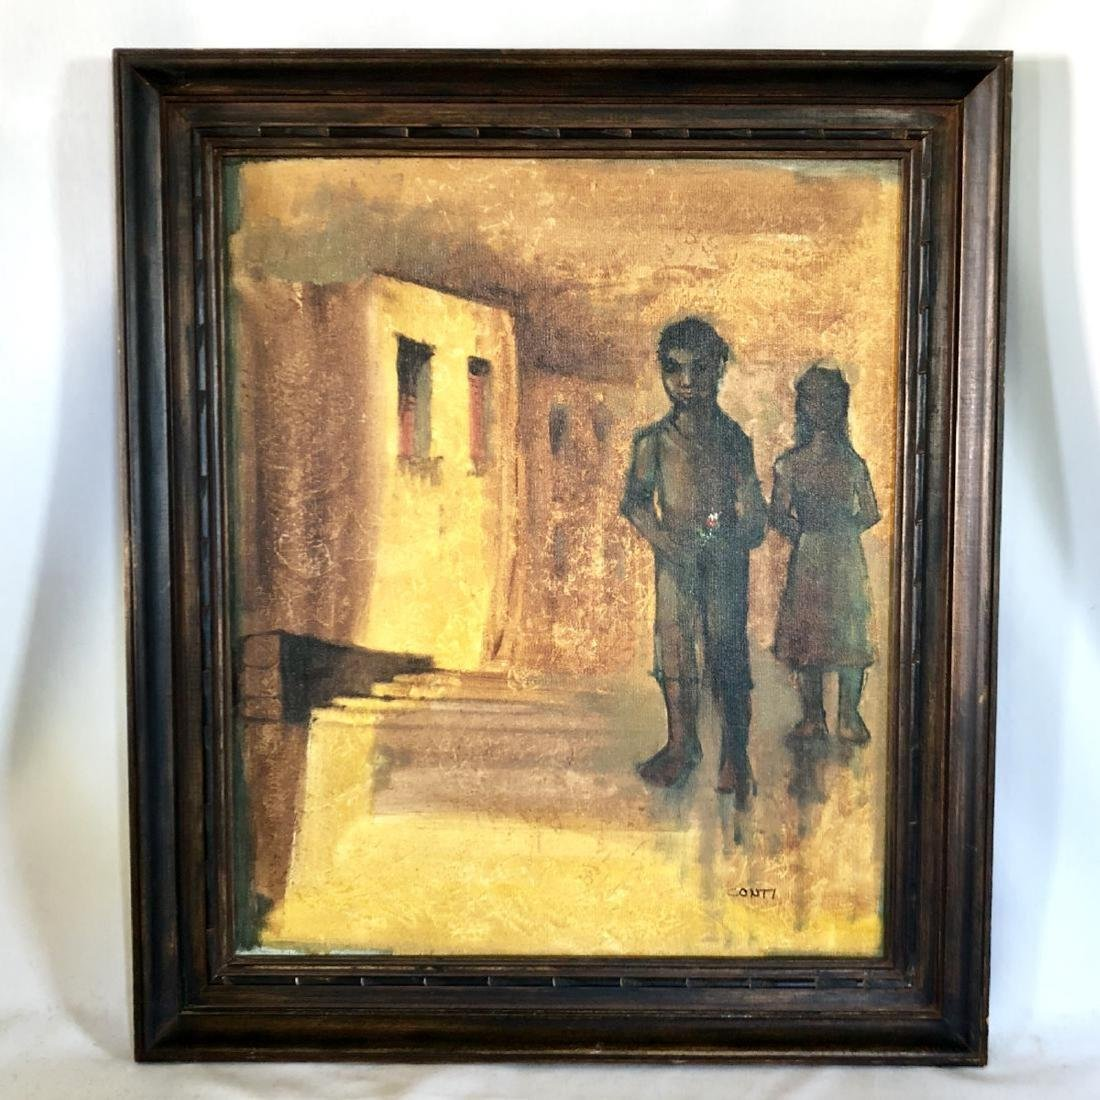 Signed Conti Oil Painting